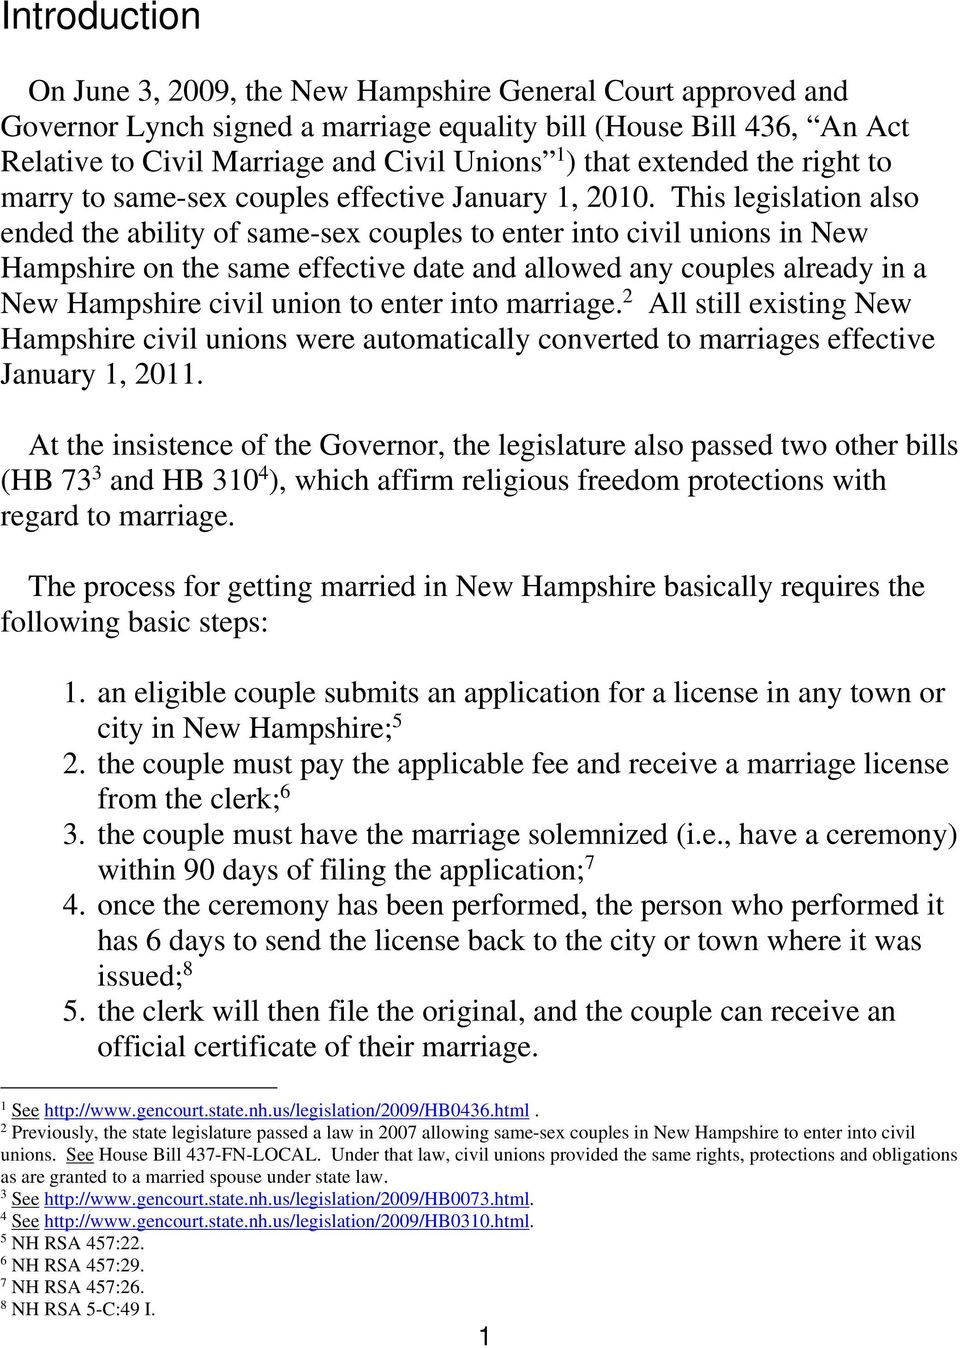 This legislation also ended the ability of same-sex couples to enter into civil unions in New Hampshire on the same effective date and allowed any couples already in a New Hampshire civil union to